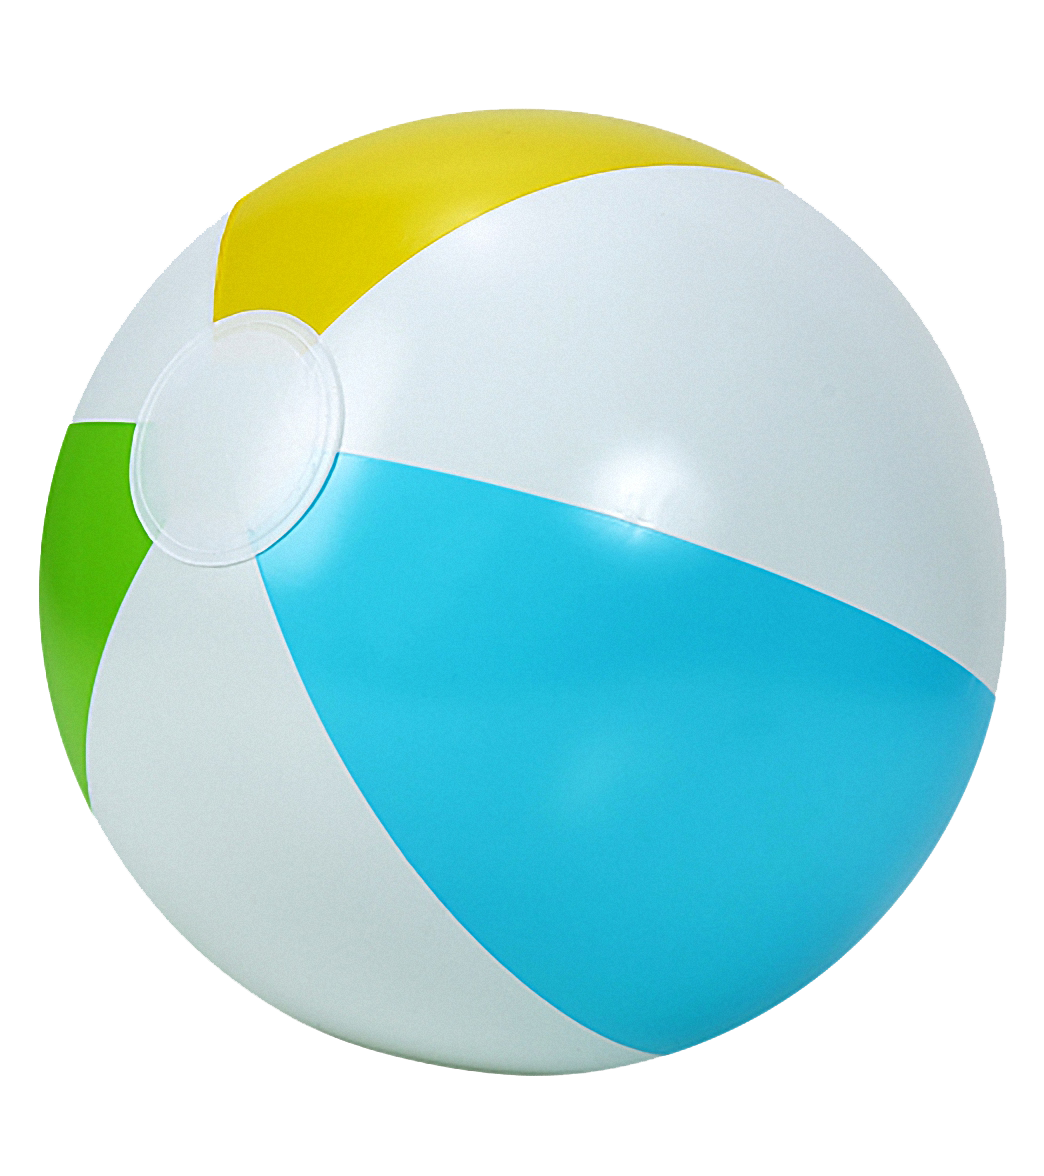 Pool Png & Free Pool.png Transparent Images #2595 - PNGio